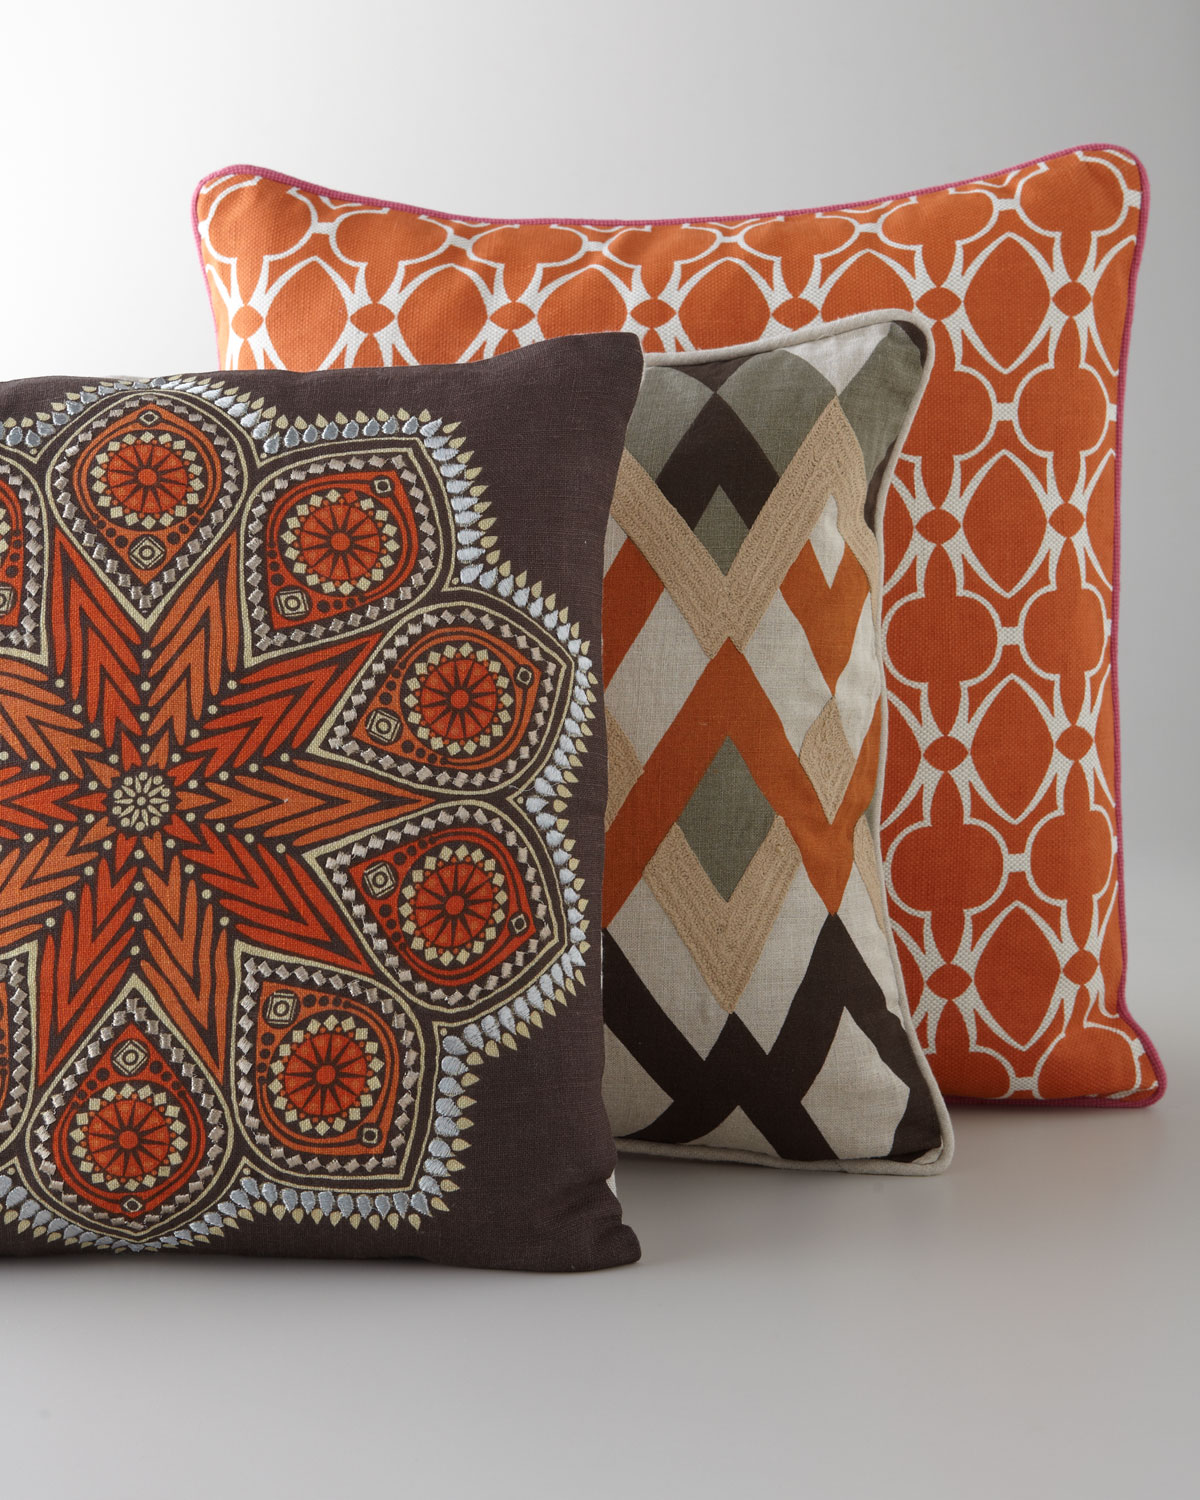 Global Bazaar Pillows from  Horchow